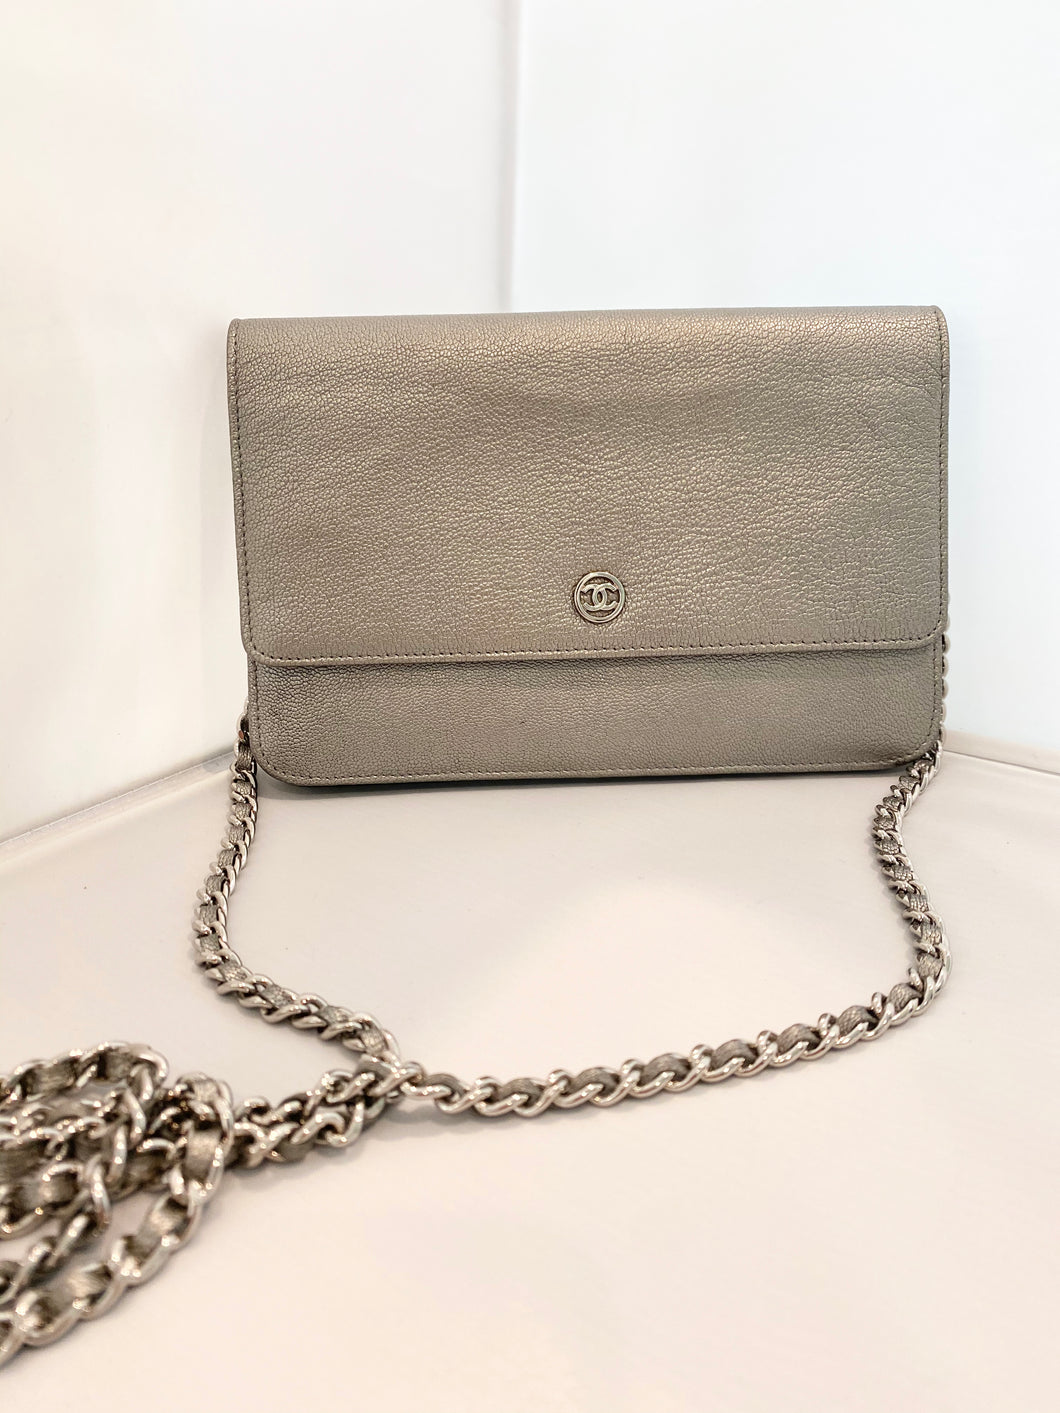 Chanel- Metallic Wallet on a Chain